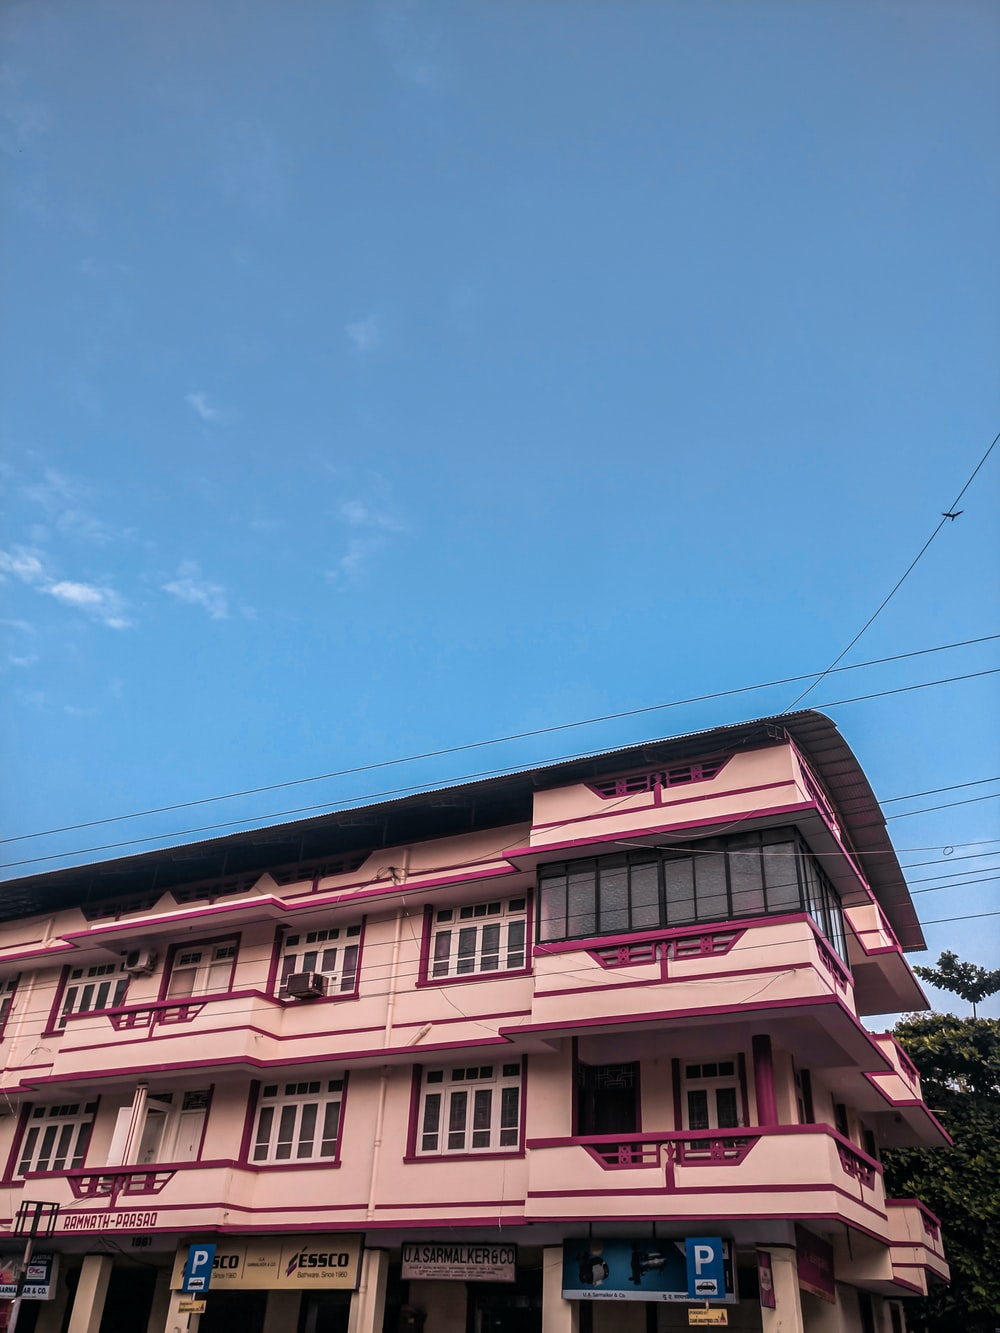 pink building under blue and white sky